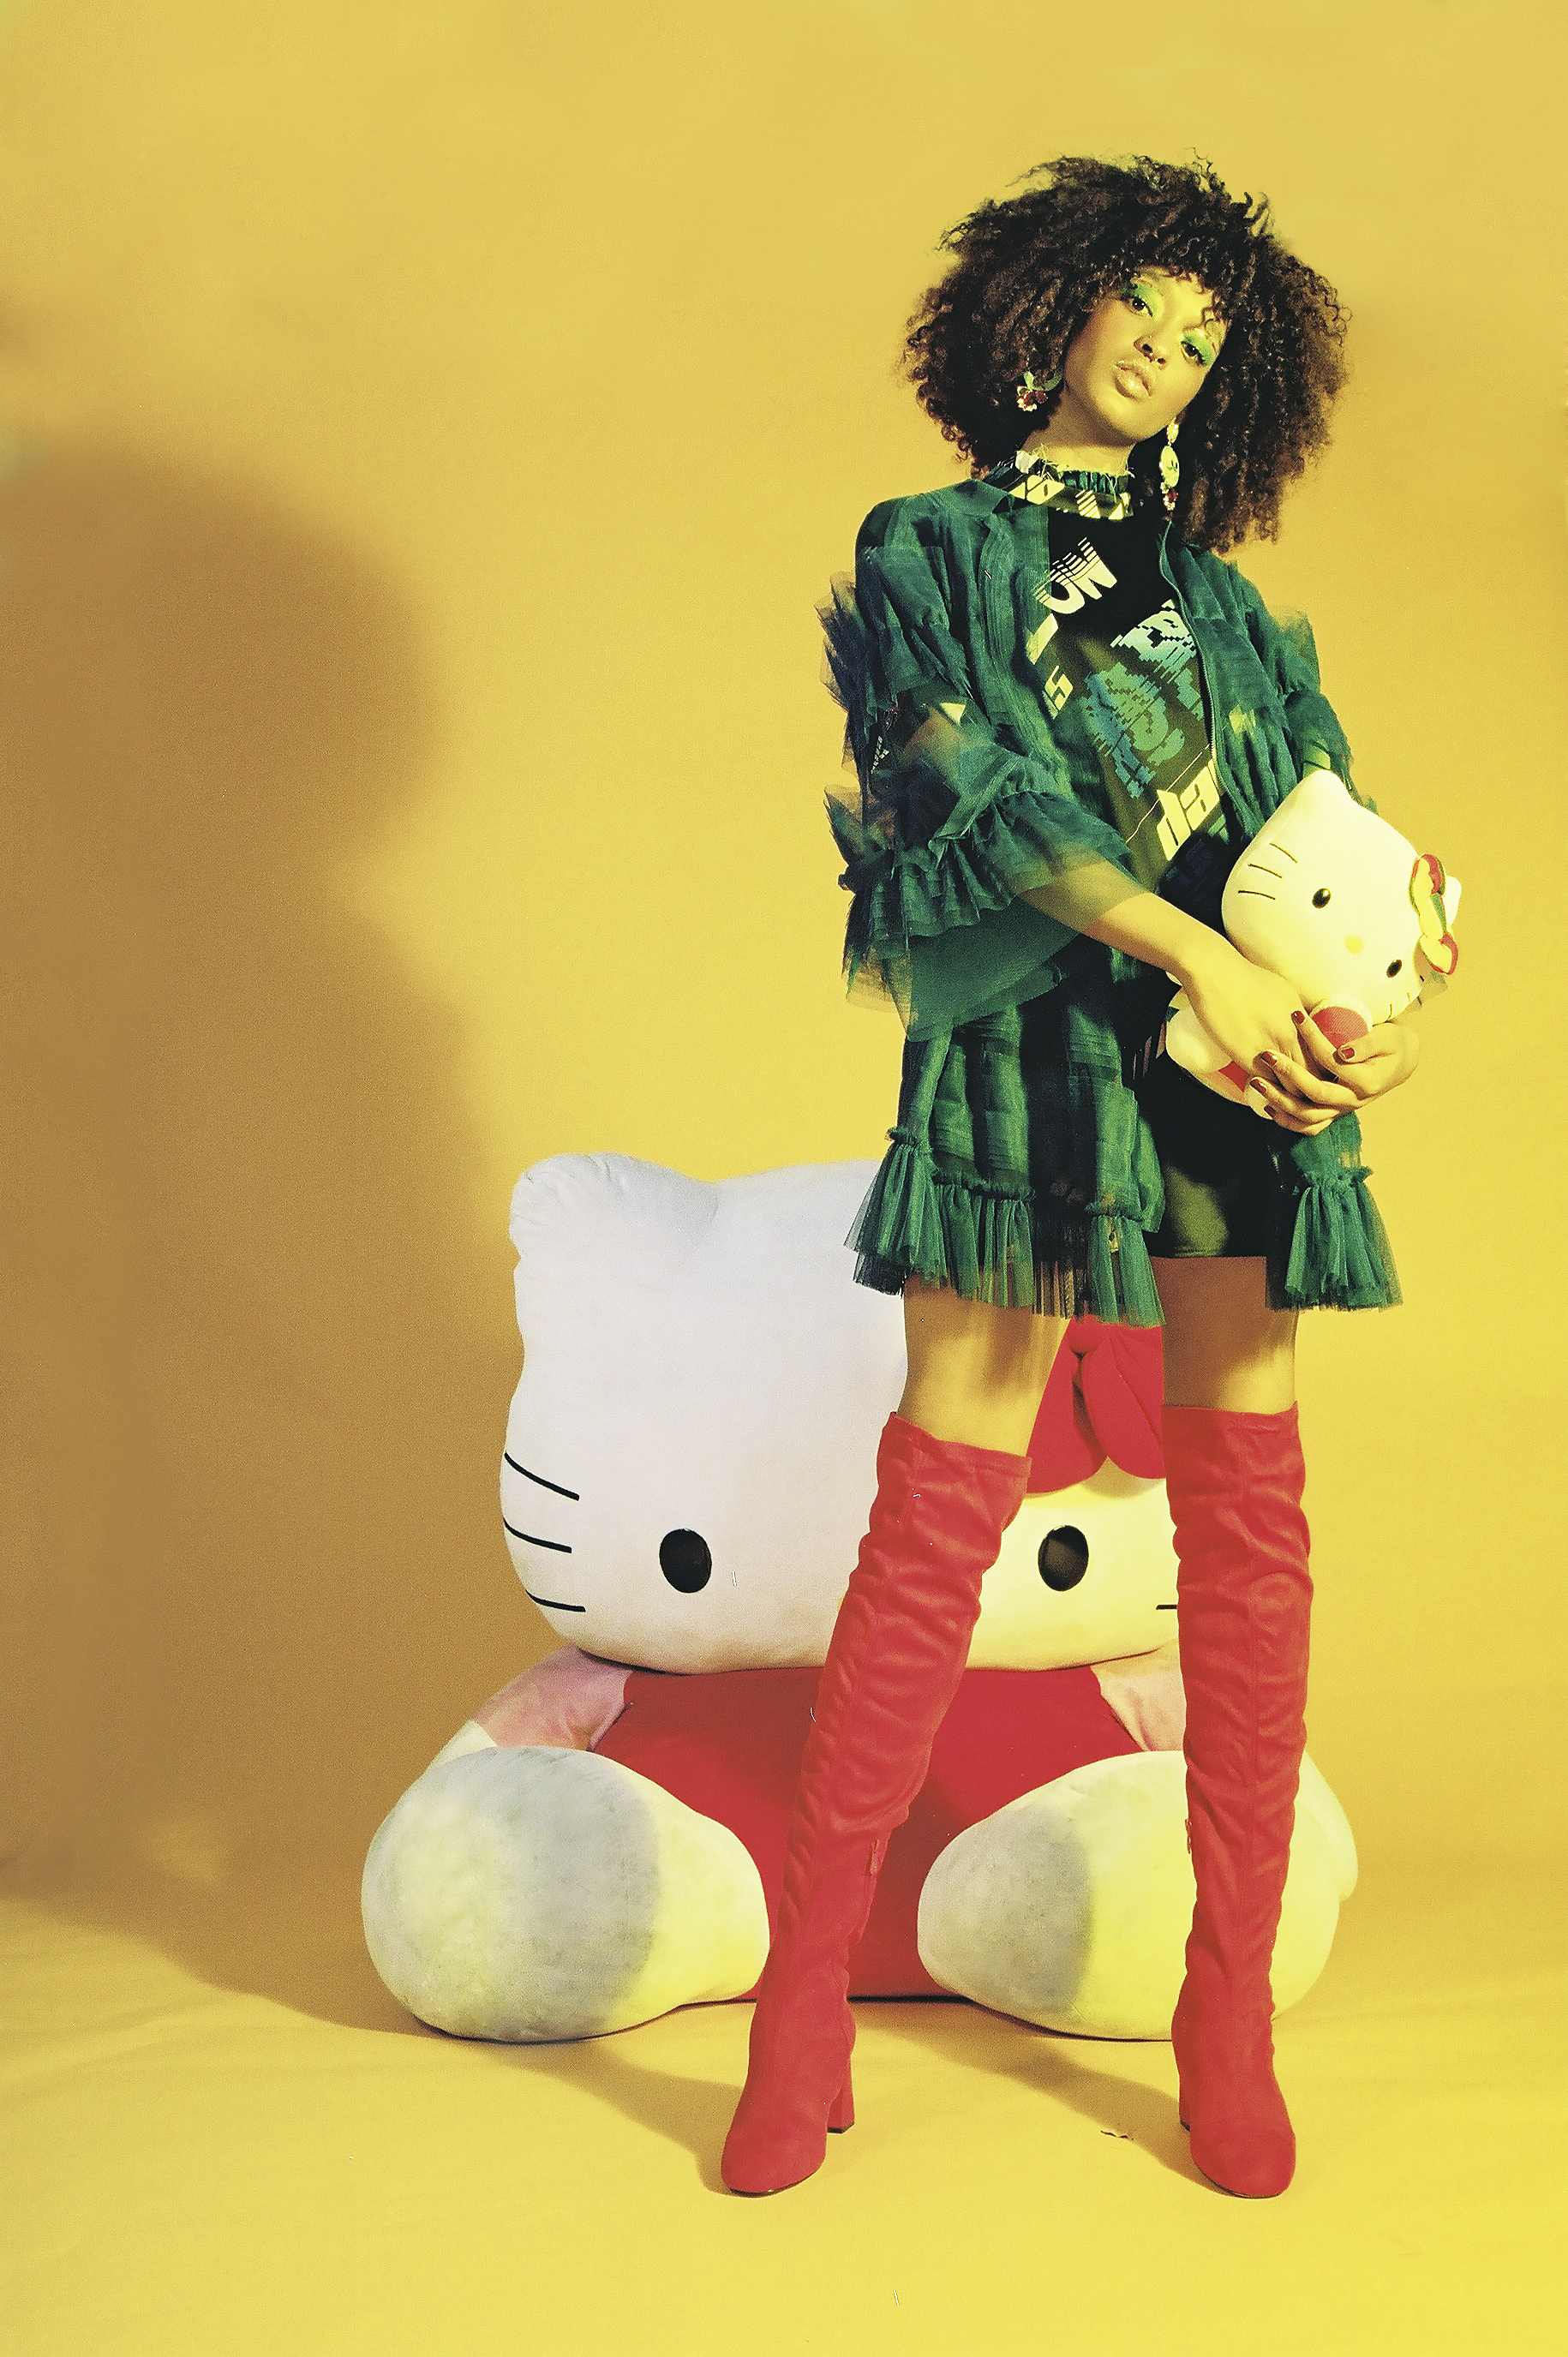 X Hello Kitty for Polyester Zine